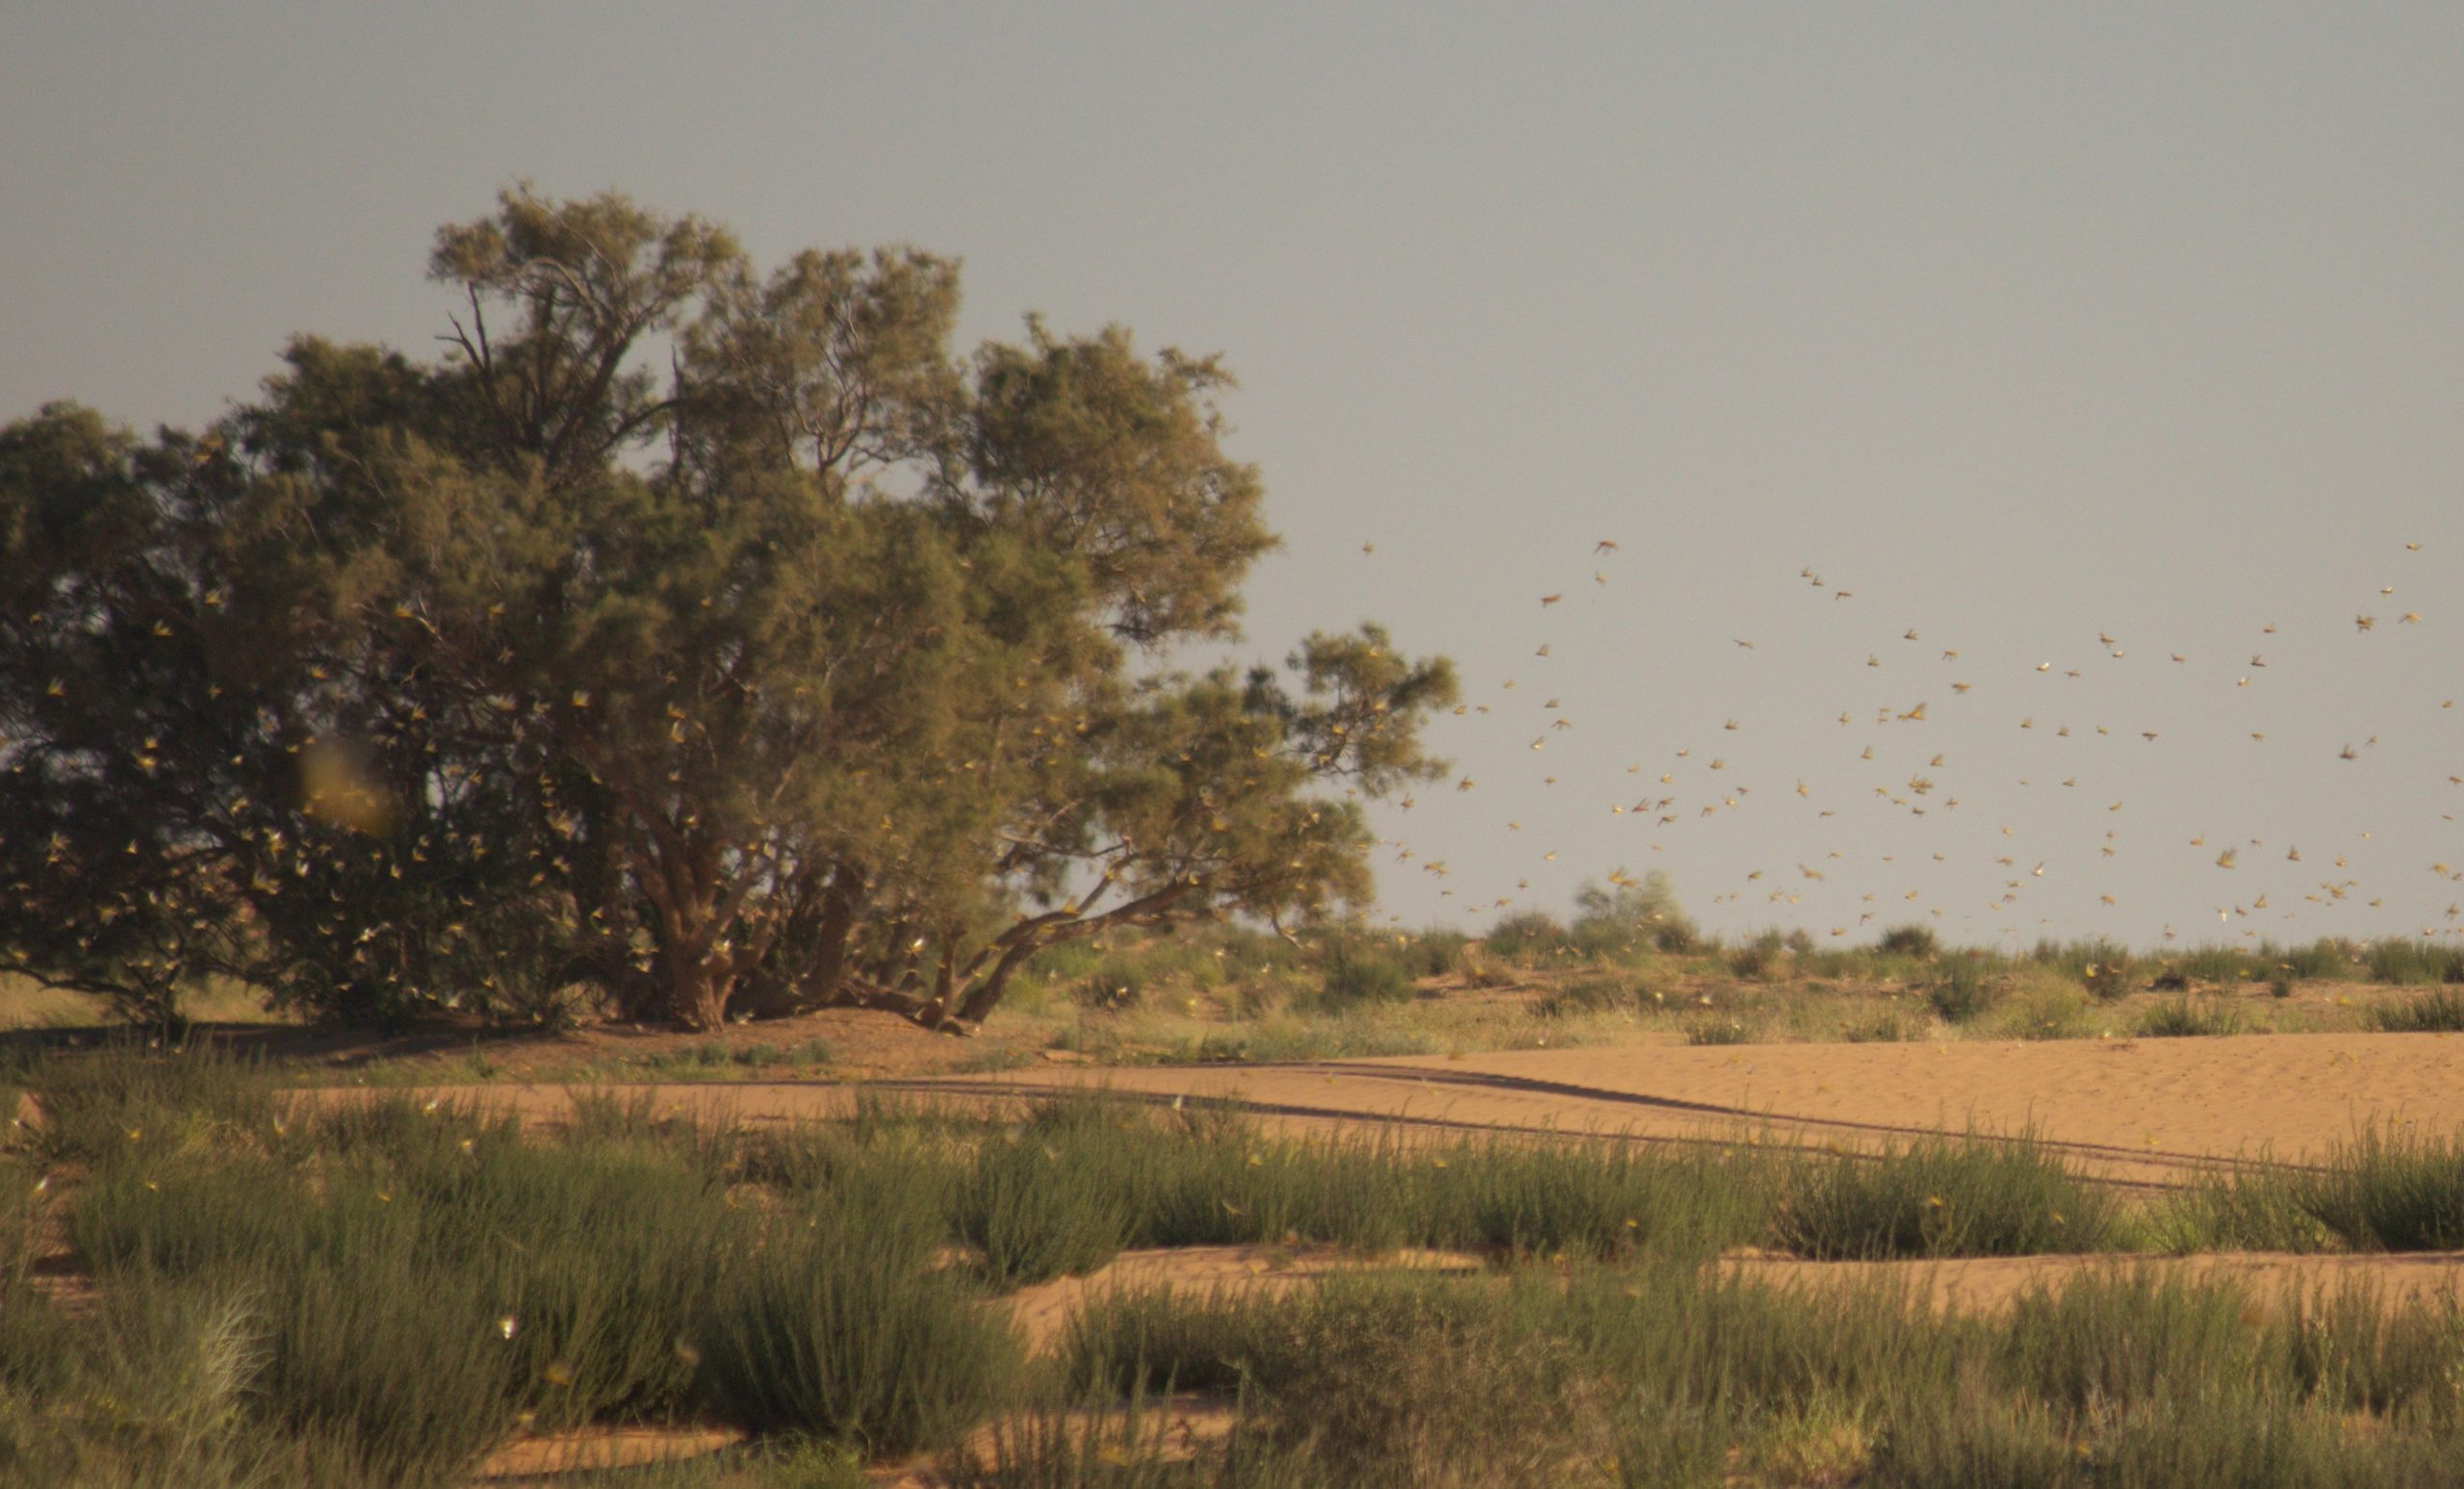 """Michael Snyder: """"Like Something out of the Book of Exodus"""": Locust Armies Are Devouring Entire Farms in Kenya in """"as Little as Thirty Seconds"""""""